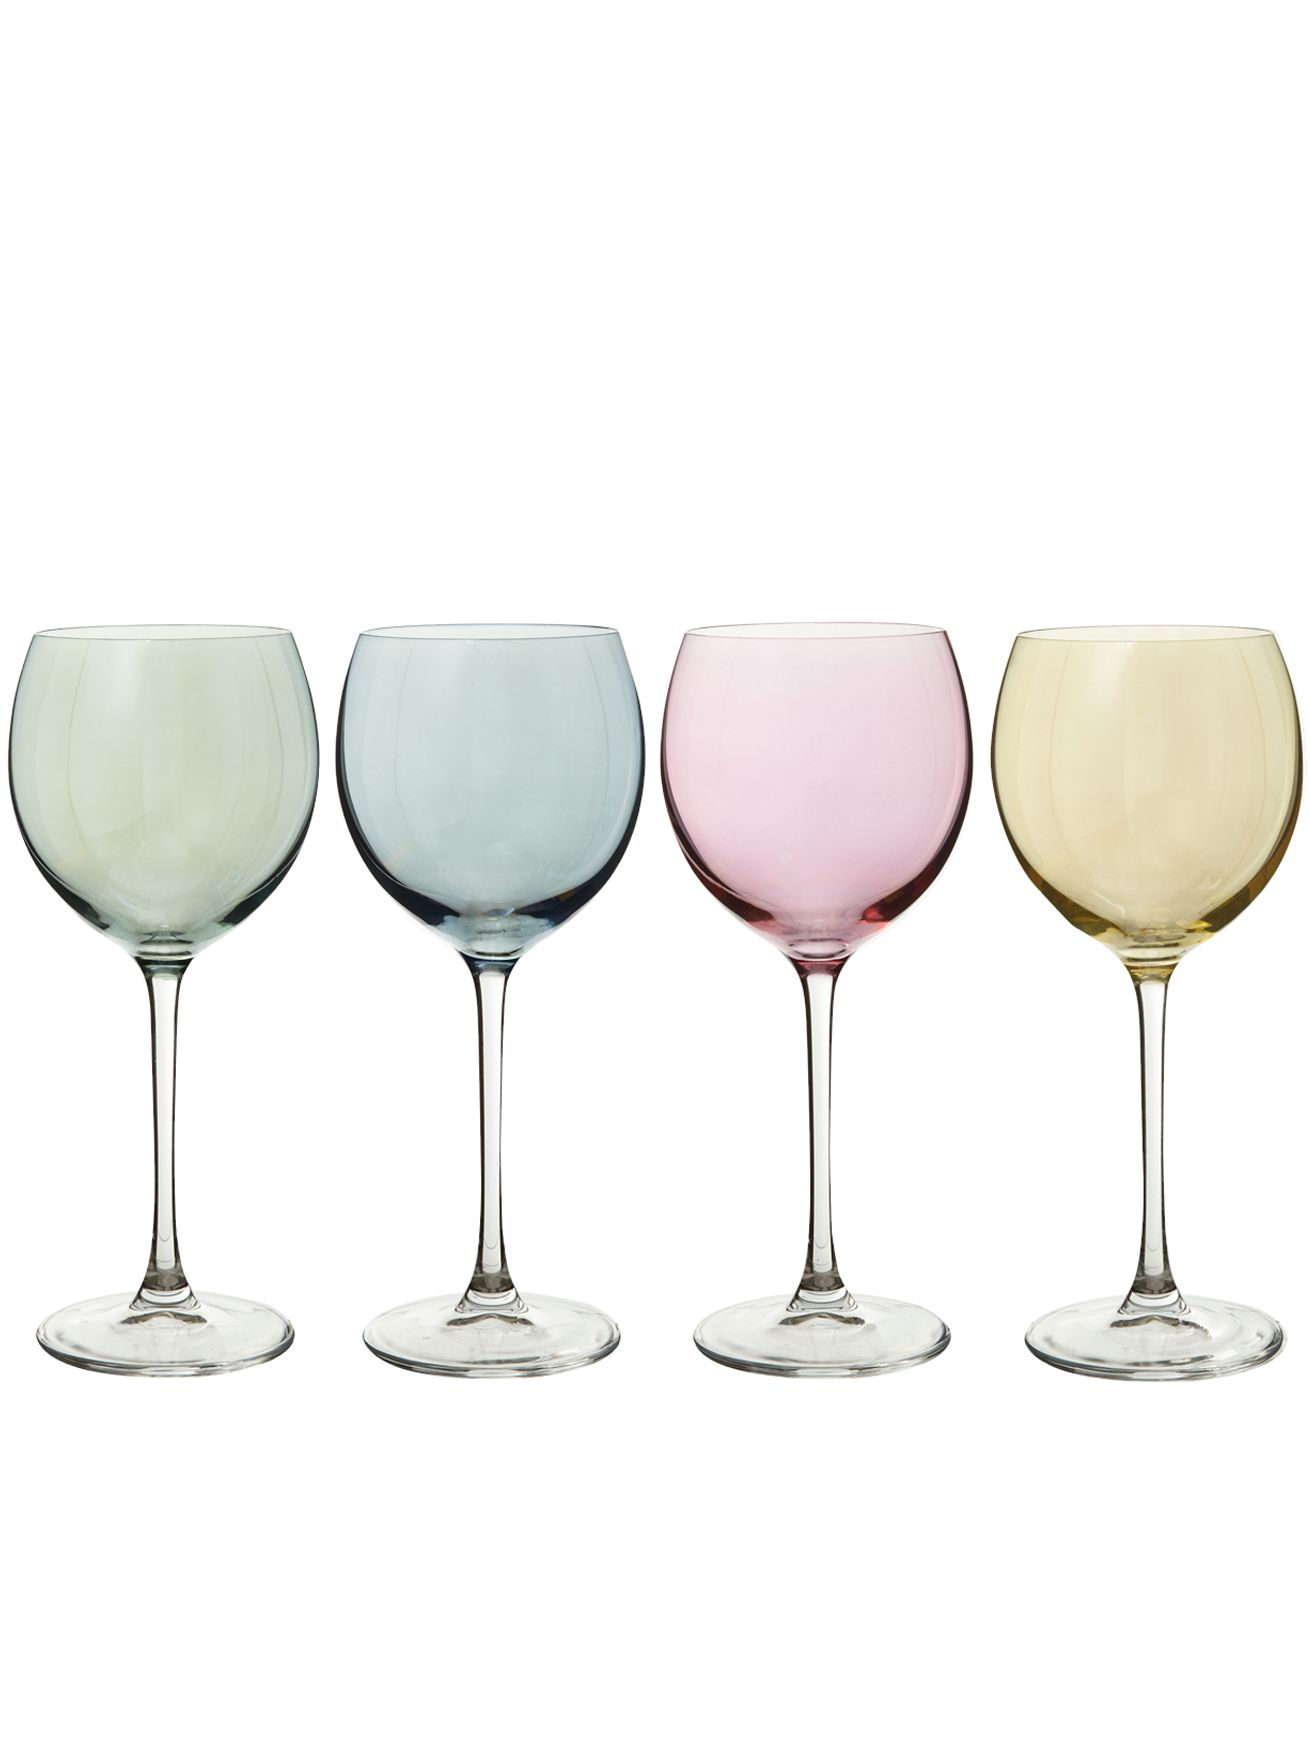 Polka Pastel wine glass, set of 4